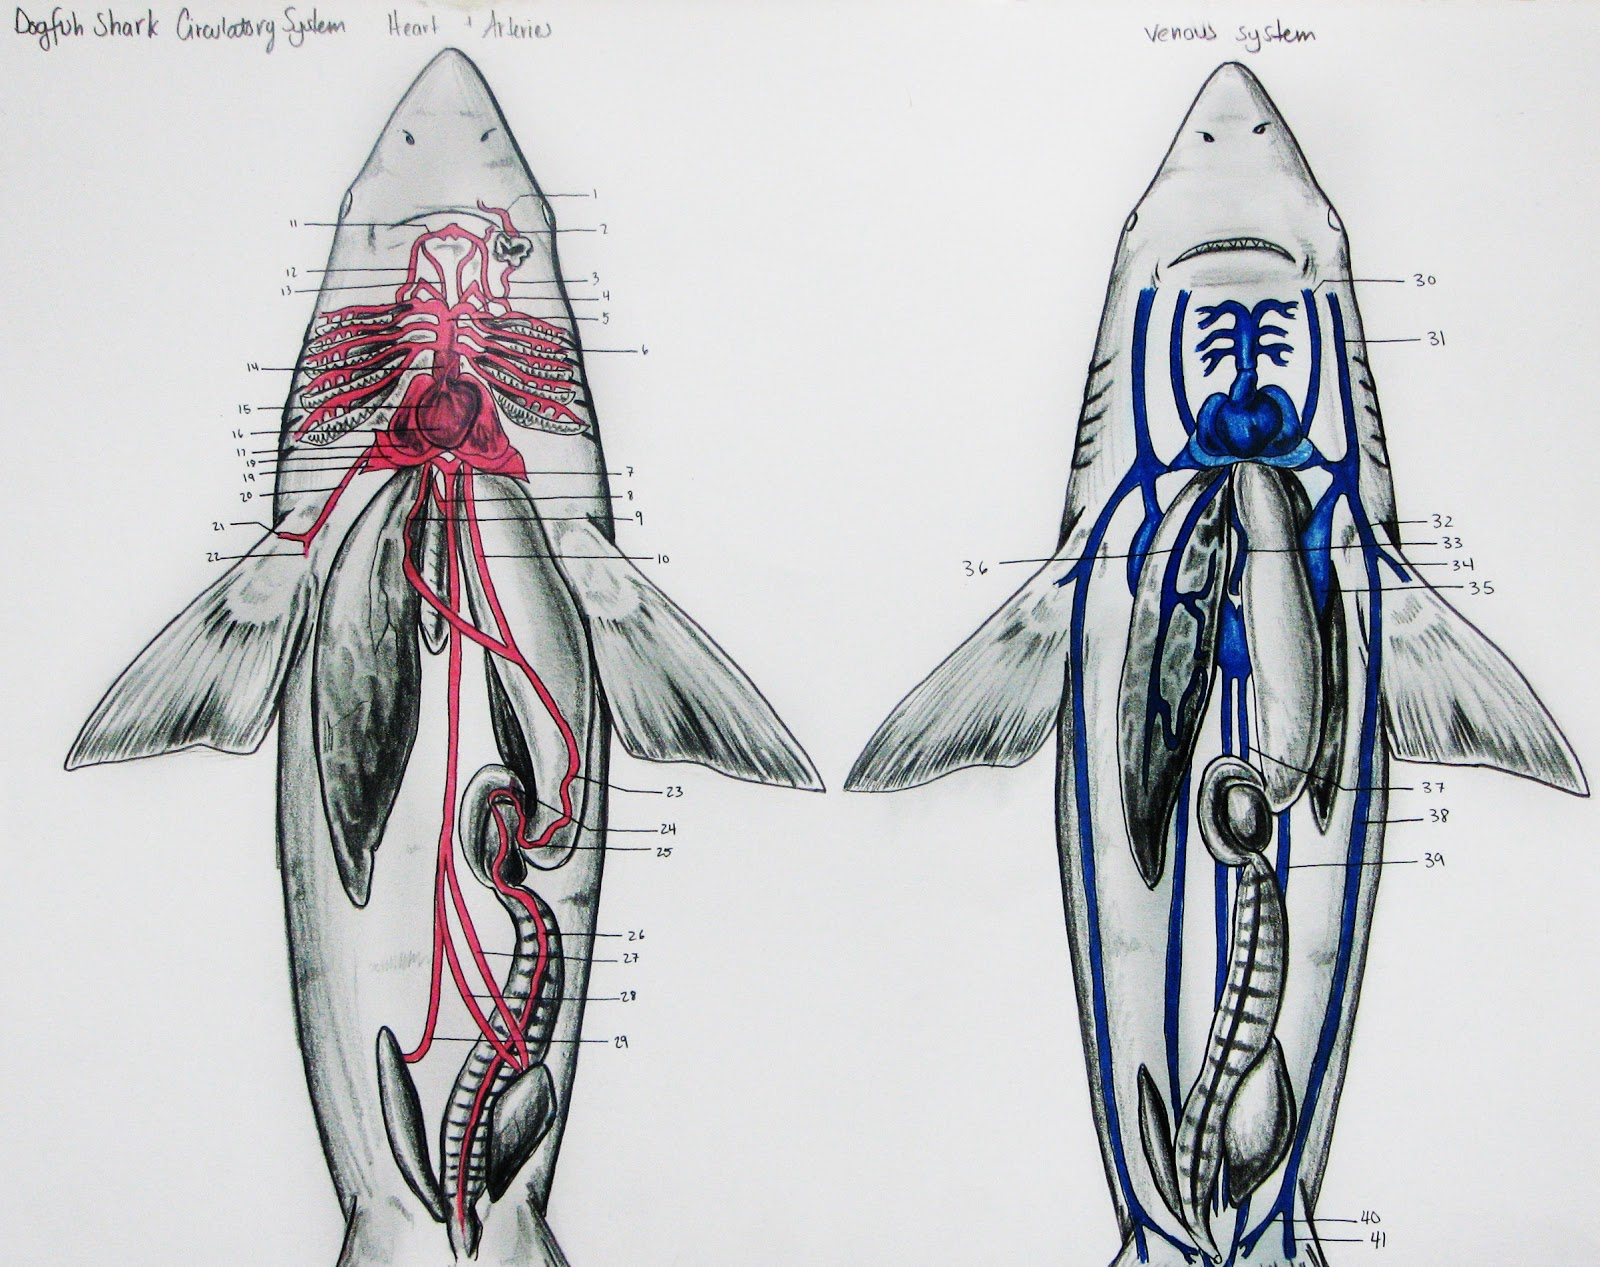 Shark Dissection Guide Diagram Hsh Wiring 5 Way Switch Tiburones En Galicia El Sistema Circulatorio De Los